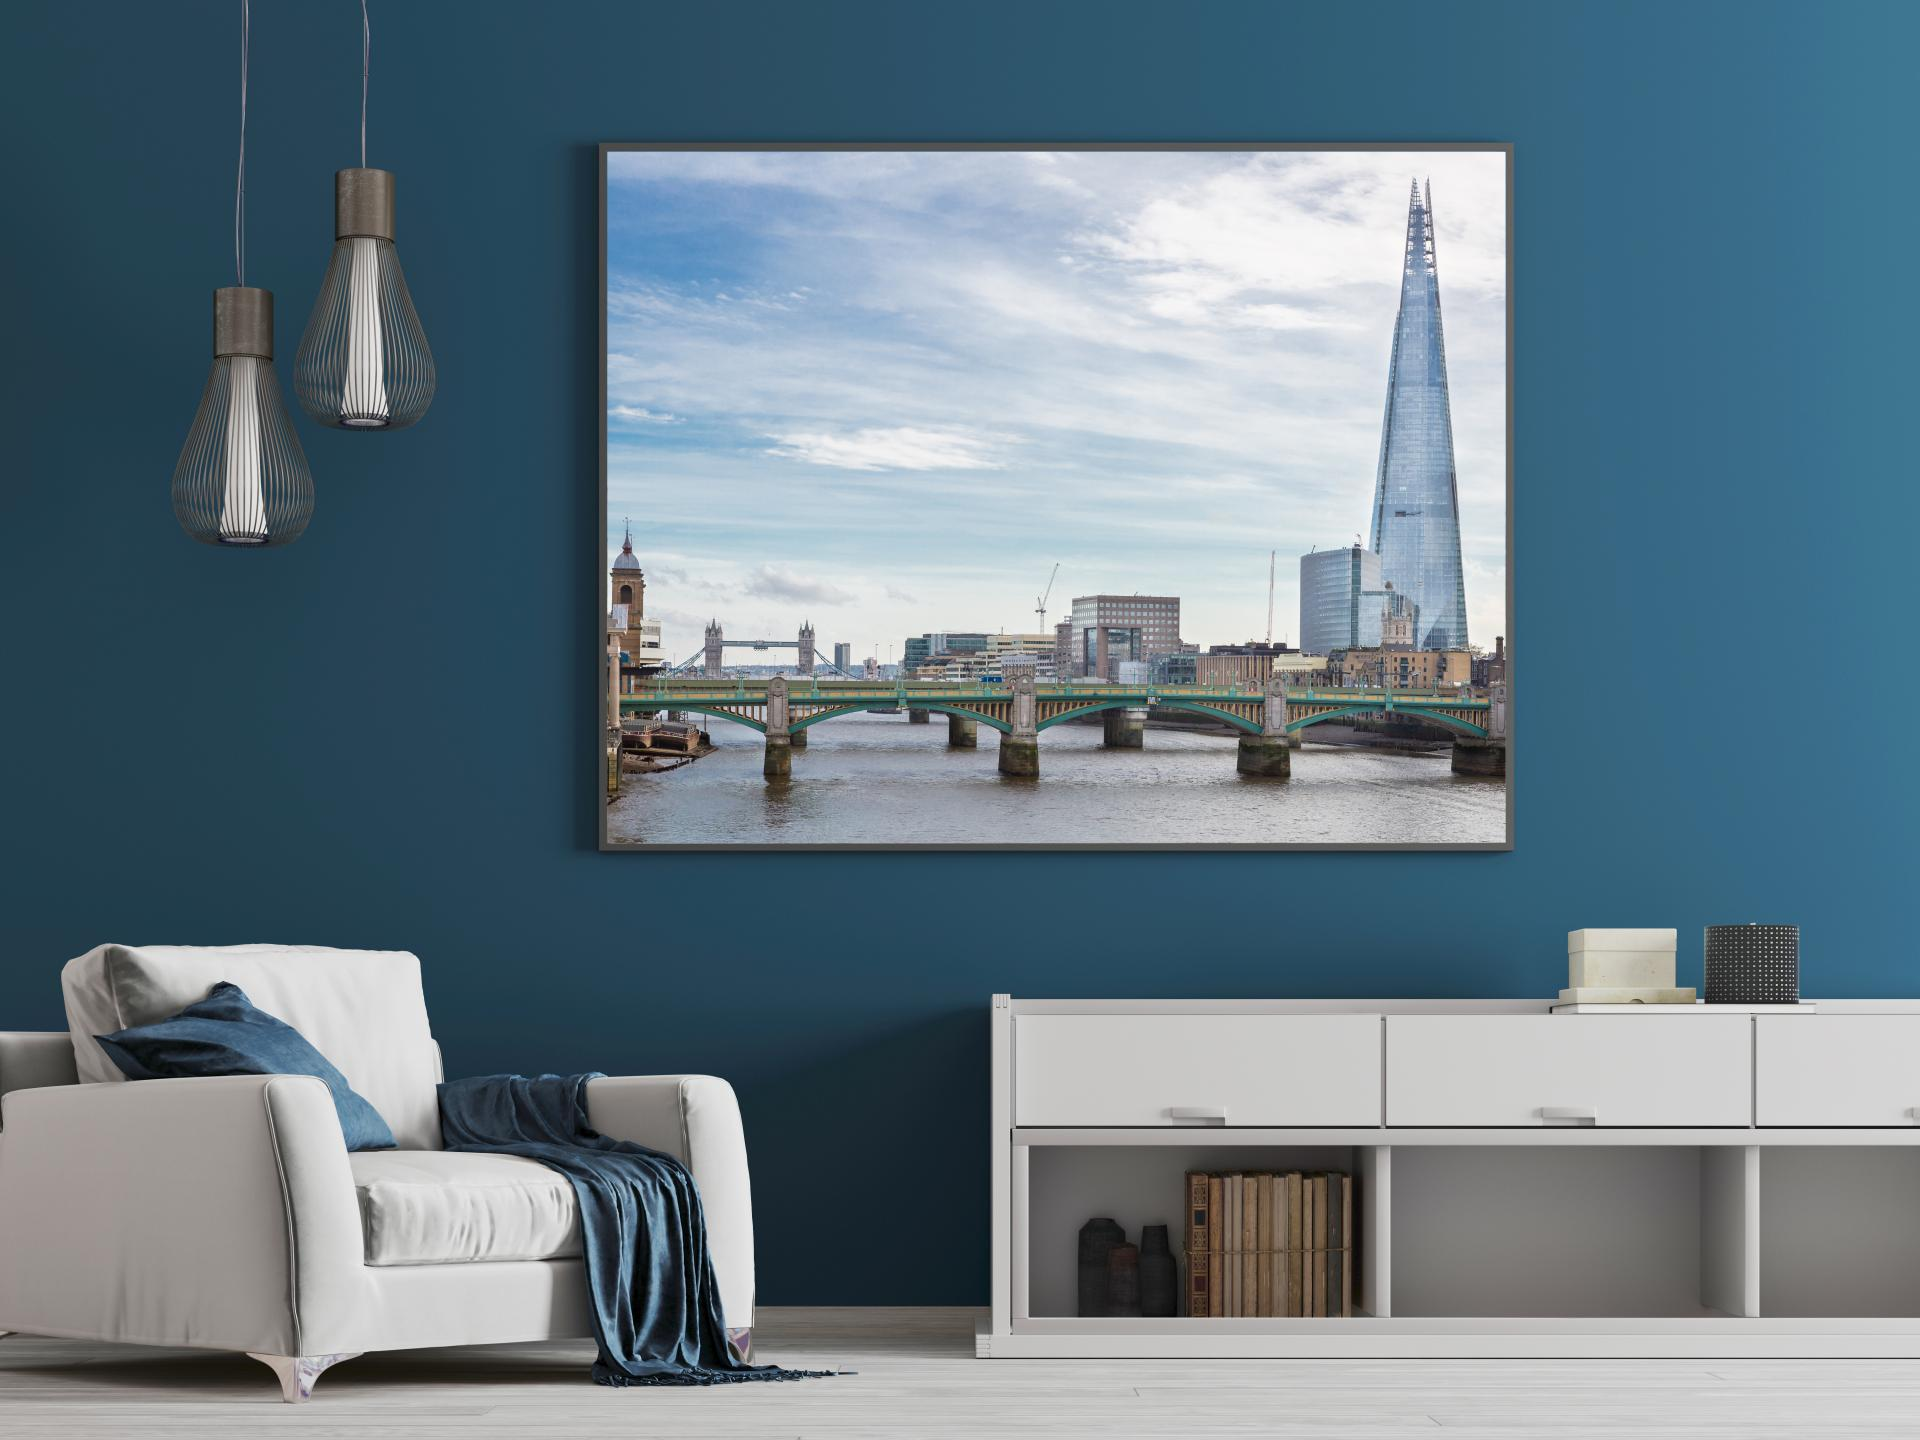 The Shard and the River Thames London taken from the Millenium Bridge.London Architectural Photographer, Liane Ryan Photography